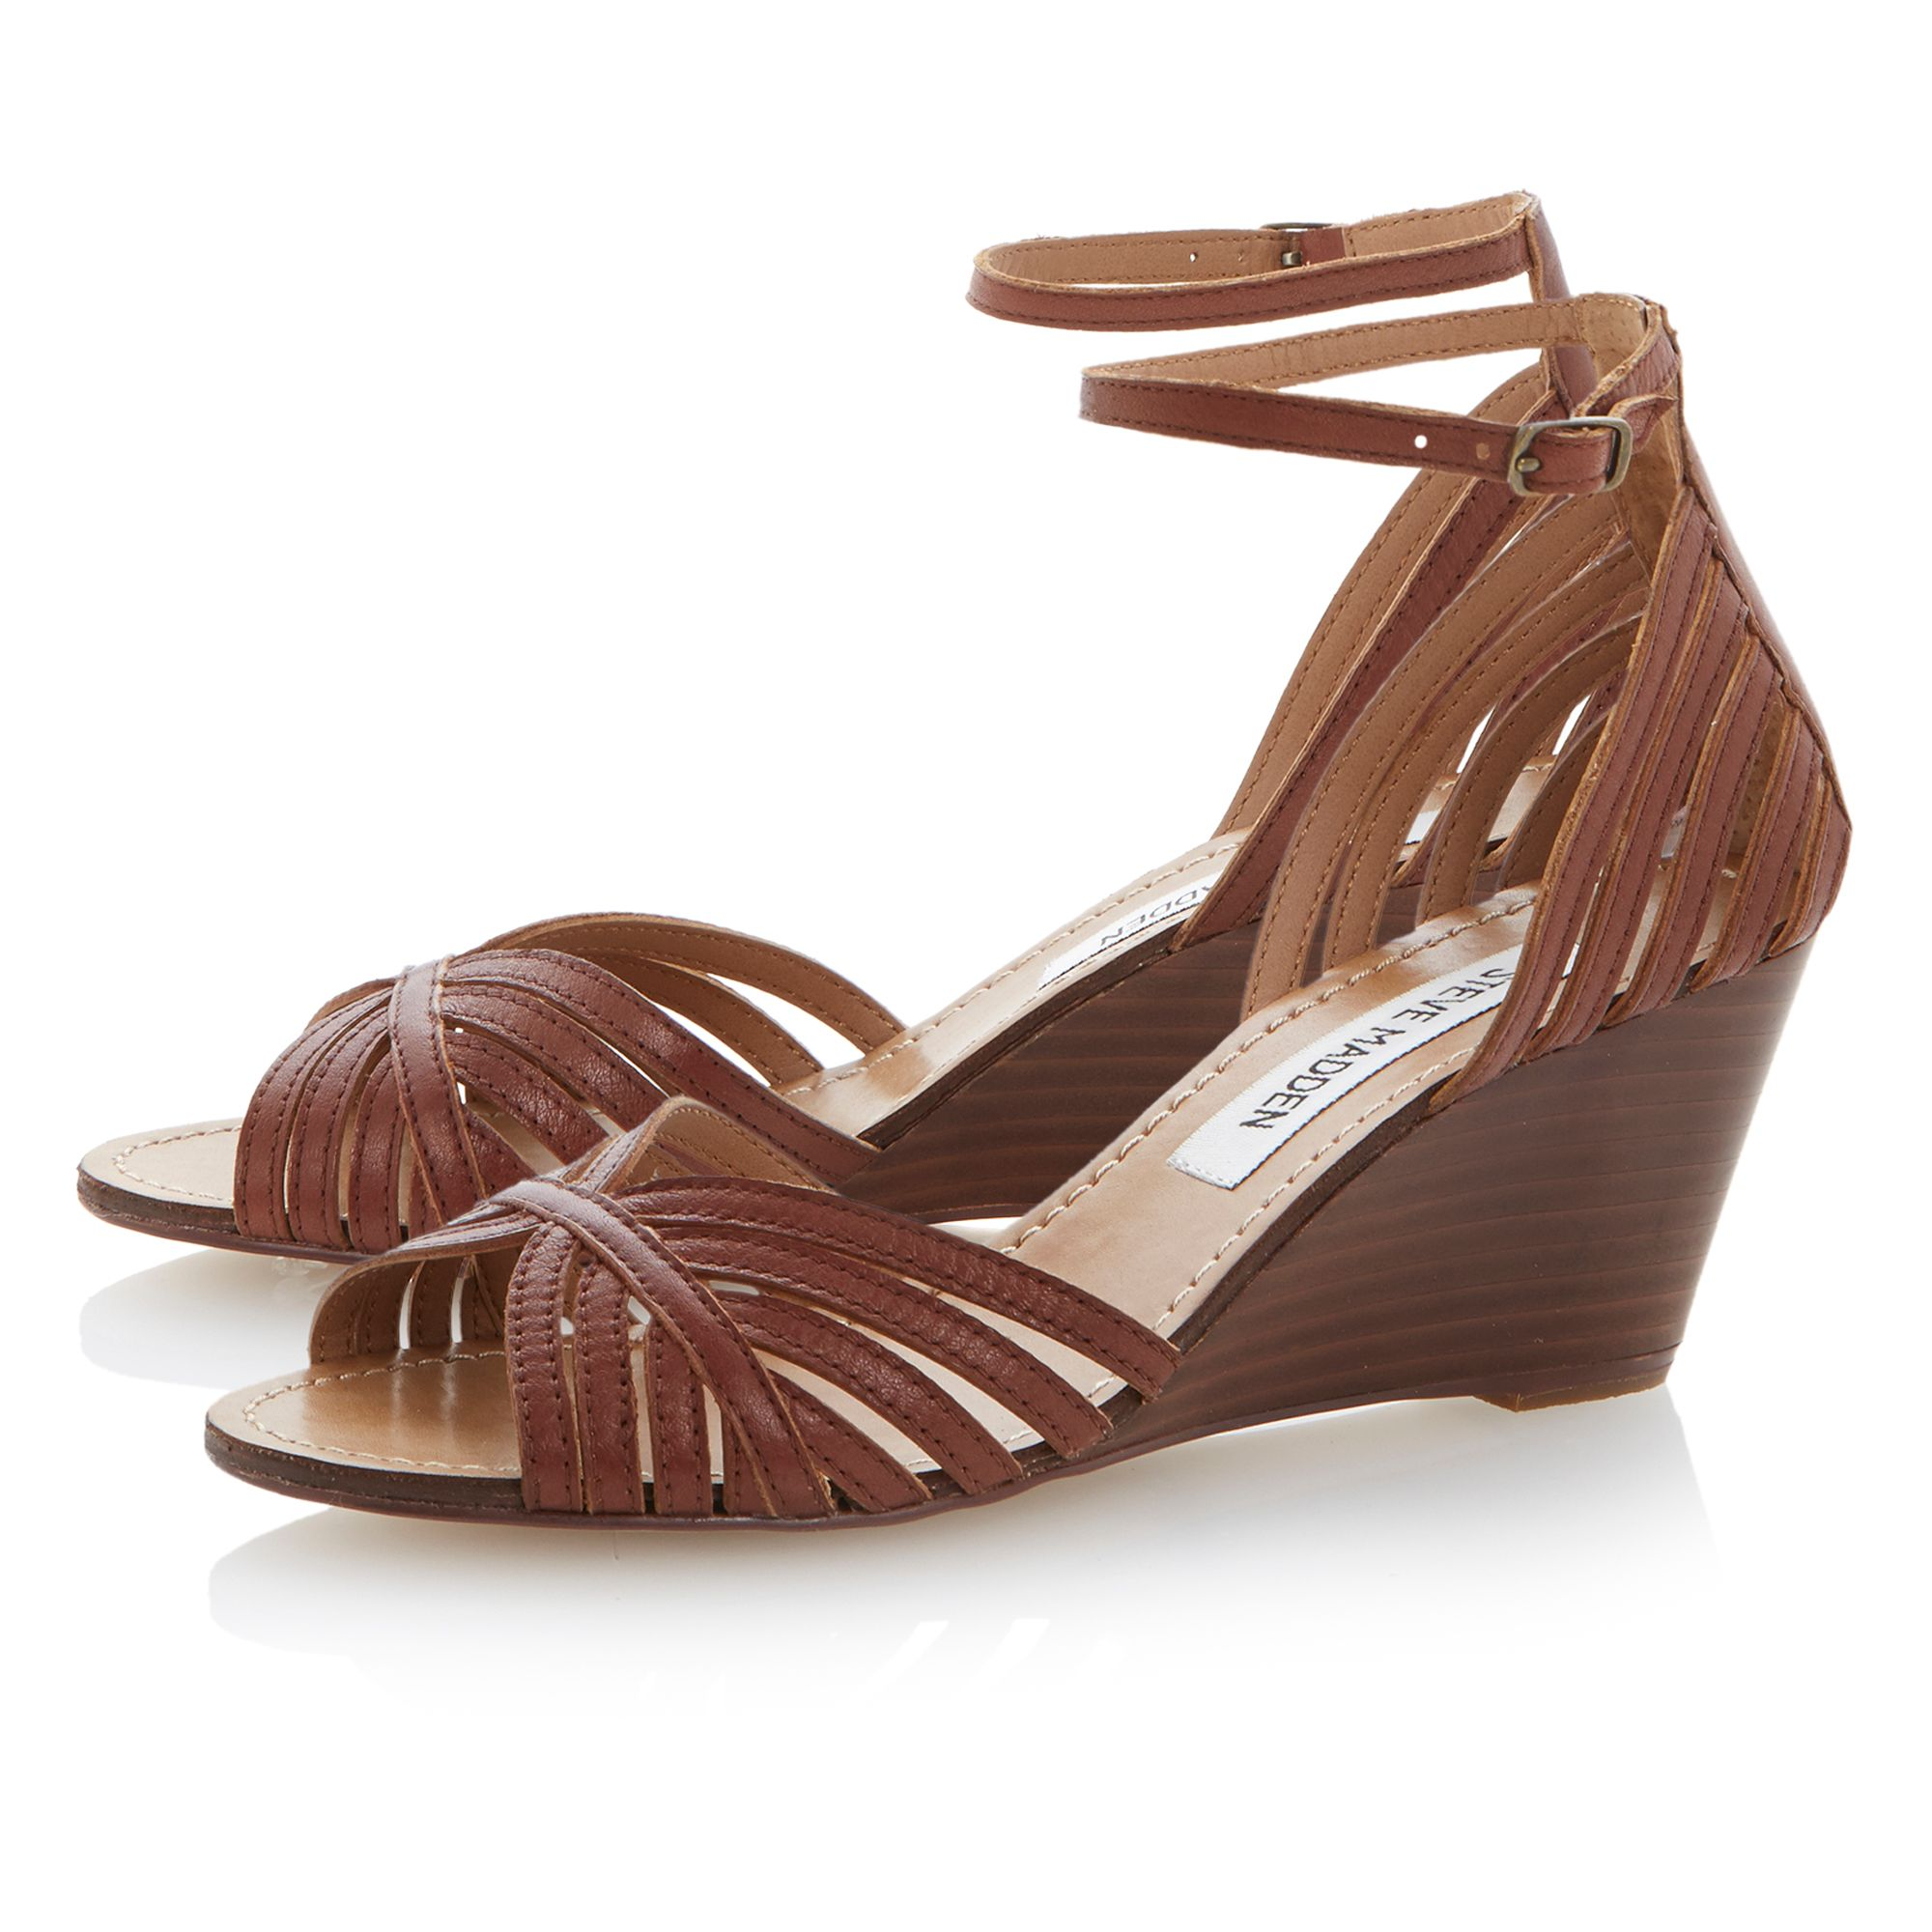 Lexii two part wedge sandals